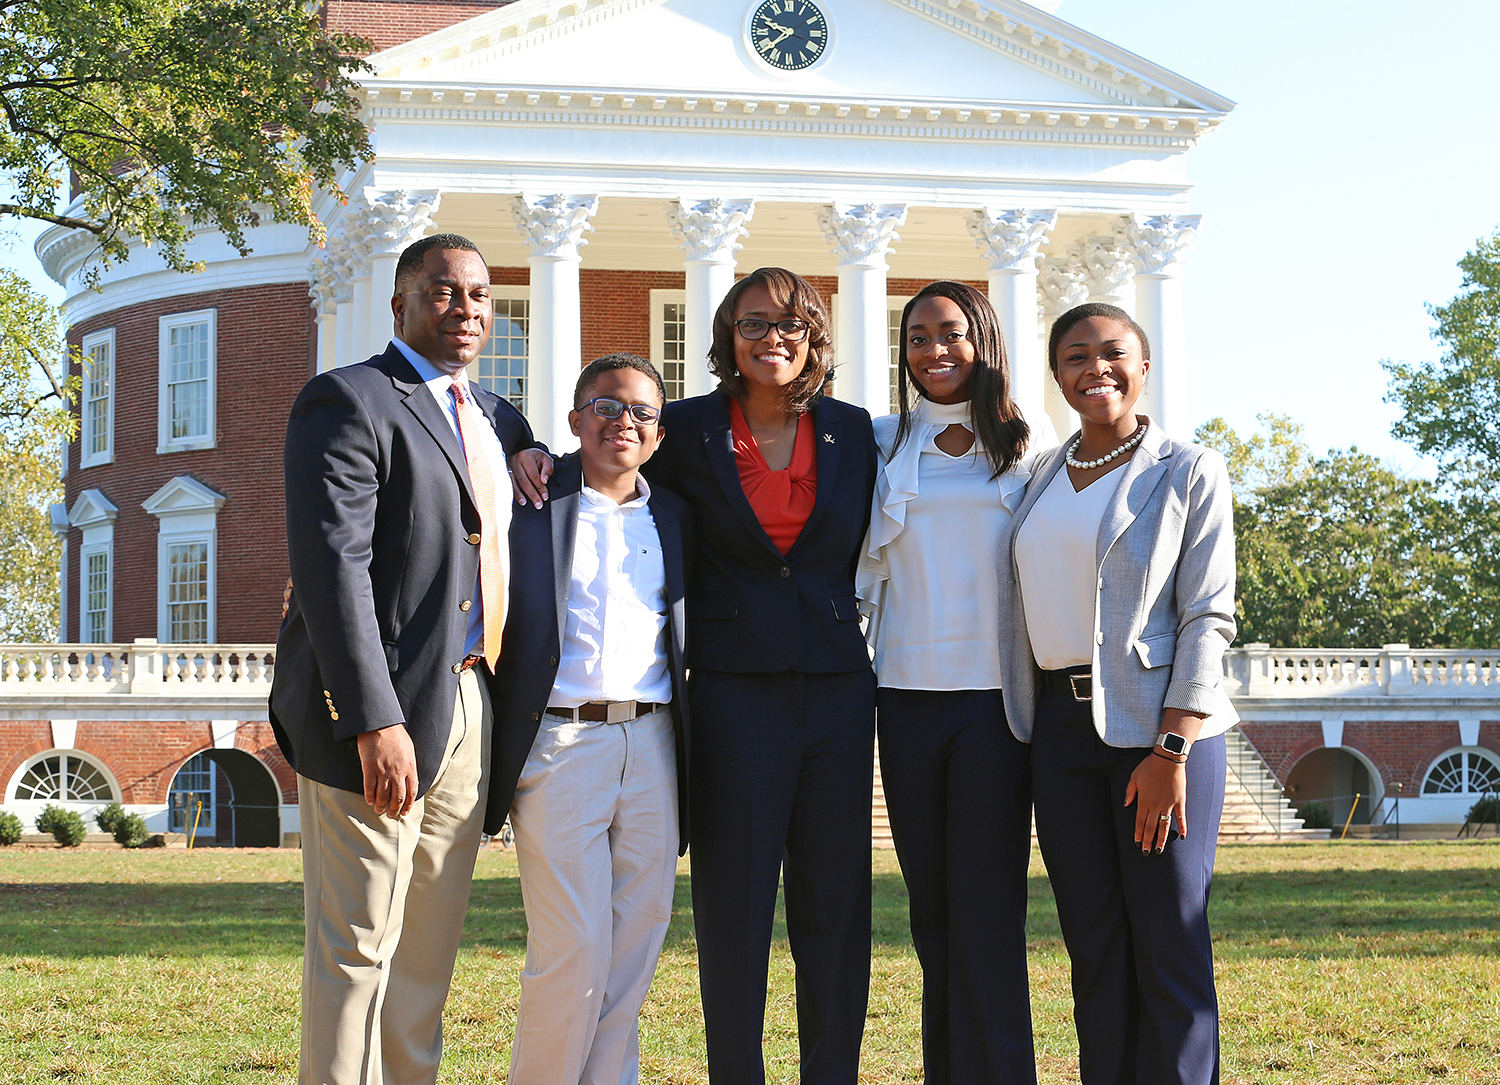 Carla Williams and her husband, Brian, an associate professor of public administration and policy in UGA's School of Public & International Affairs, have three children: daughters Carmen and Camryn, and a son, Joshua. (Photo by Matt Riley, UVA Athletics)